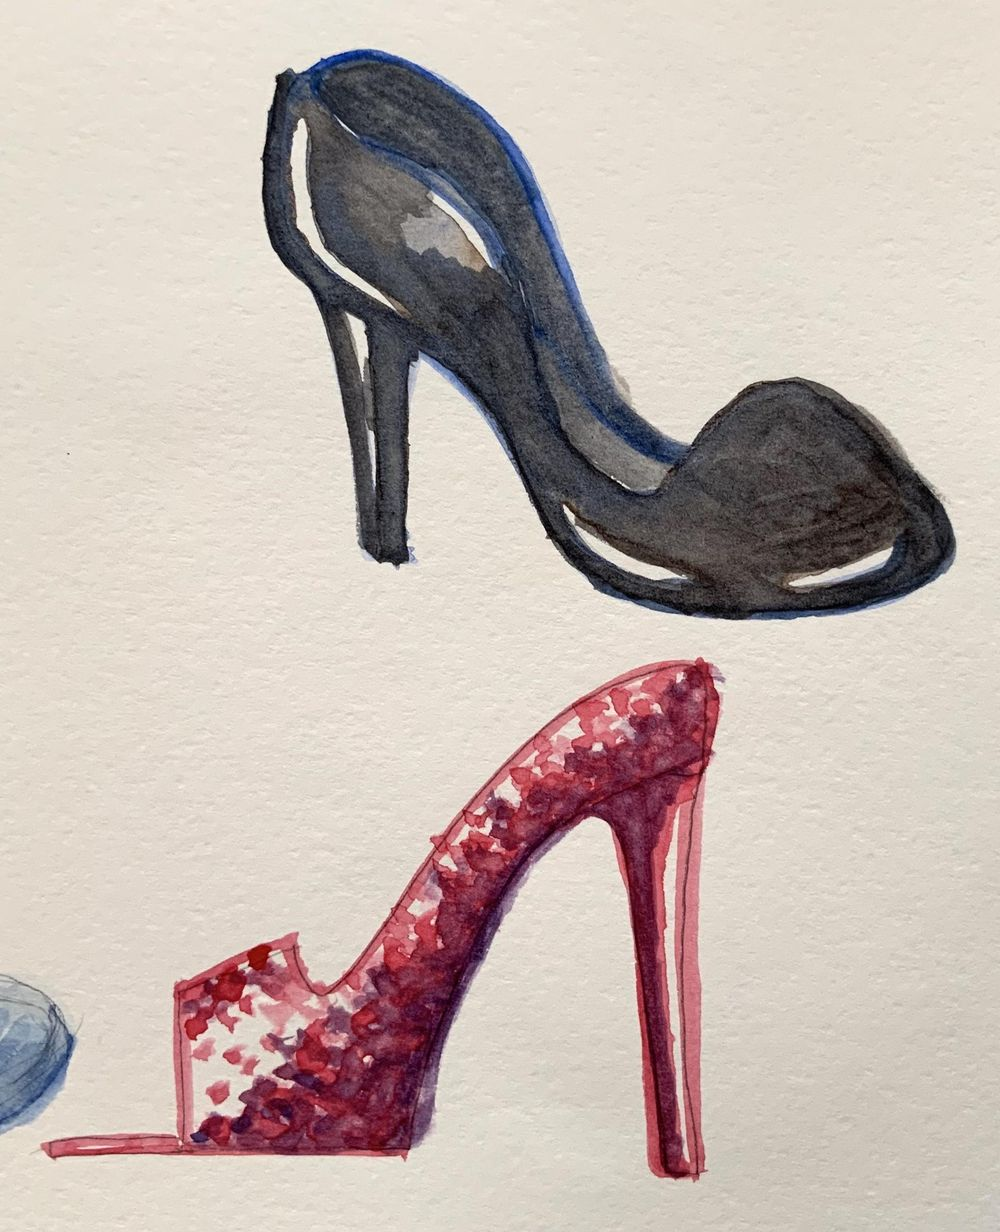 Shoes - image 1 - student project